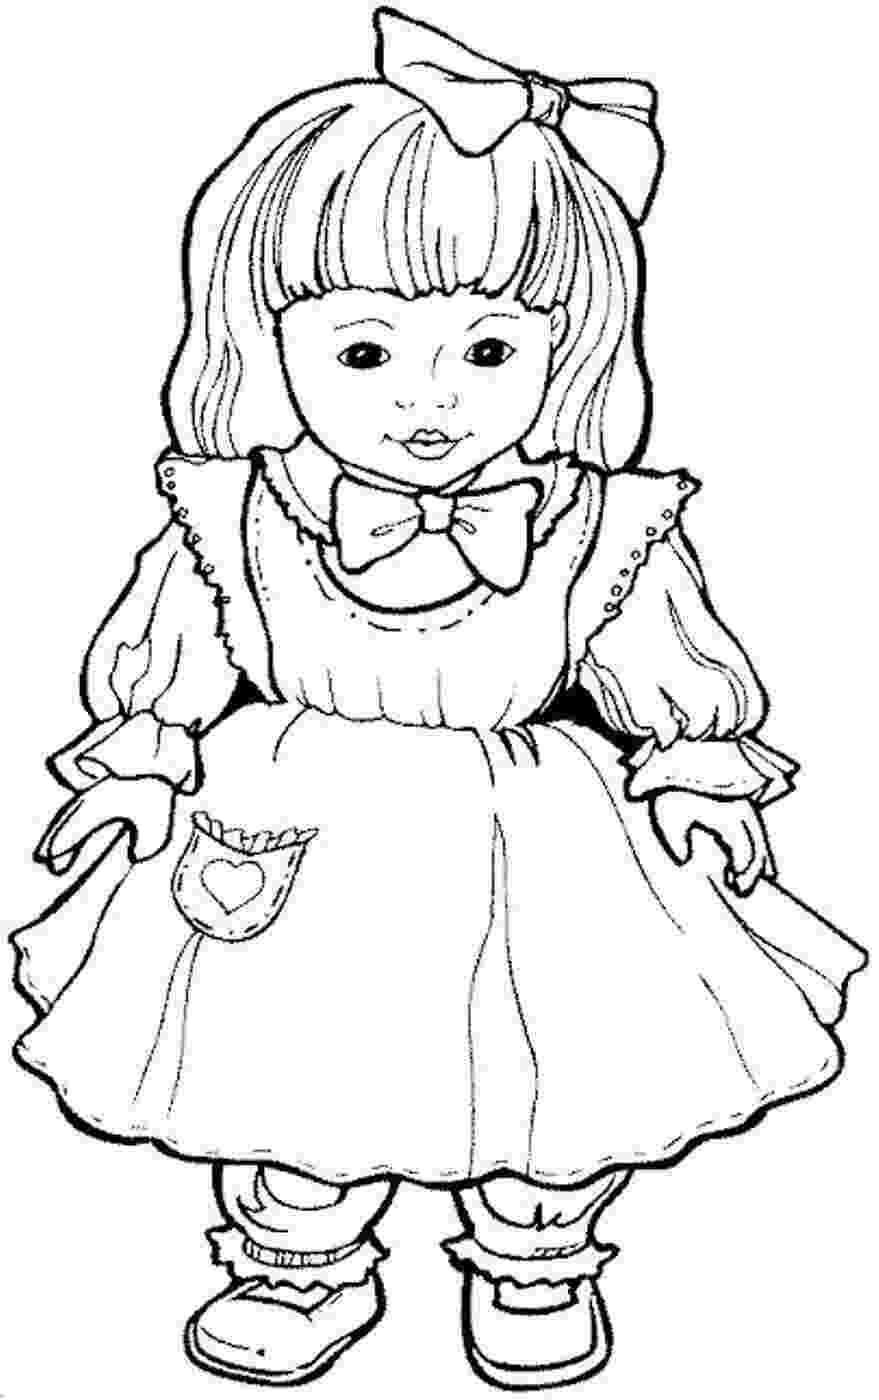 american girl coloring pages printable american girl saige coloring page free printable coloring american printable girl pages